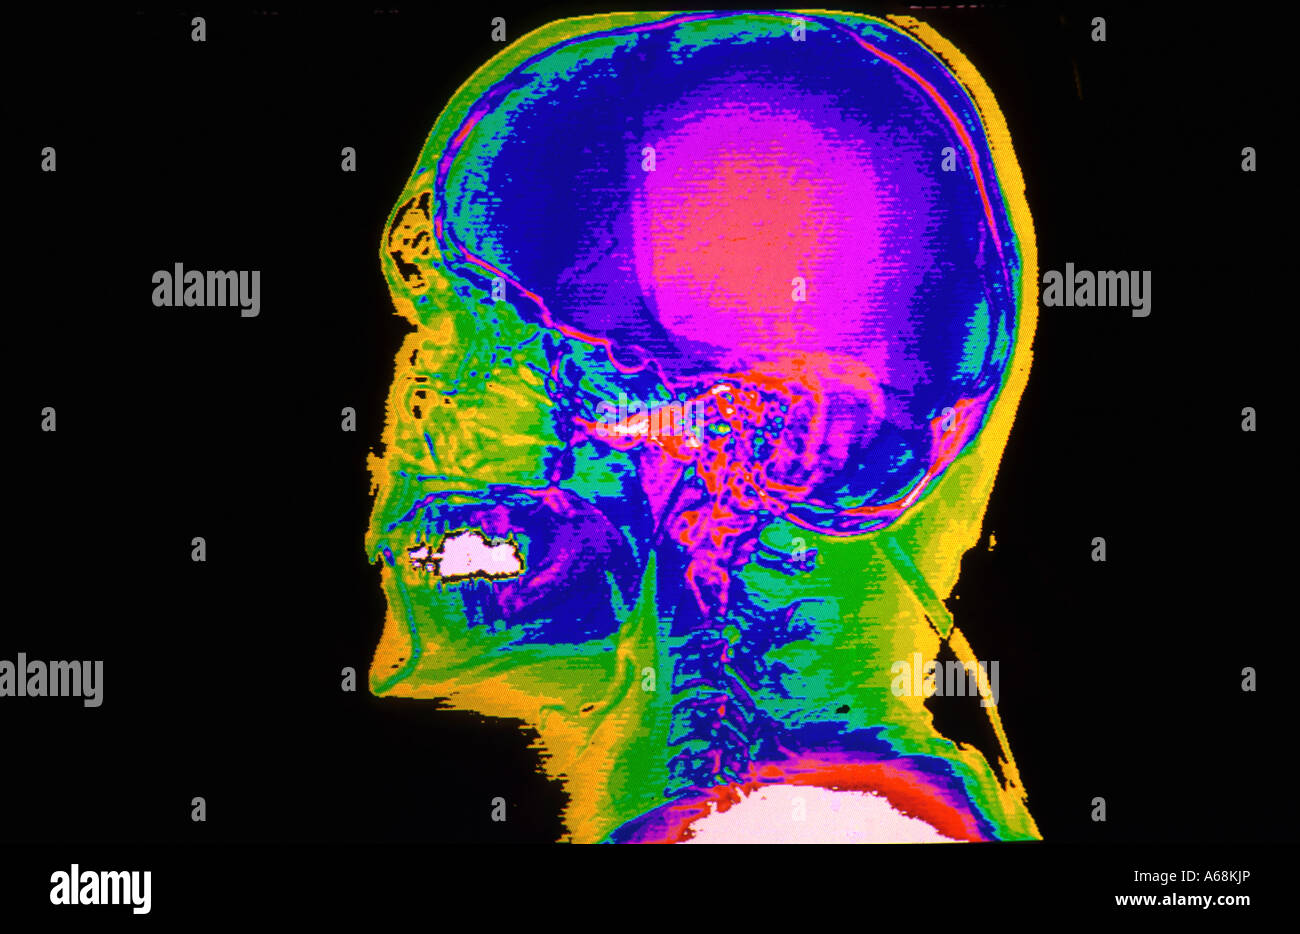 Color Ct Scan Lateral Skull Stock Photos & Color Ct Scan Lateral ...